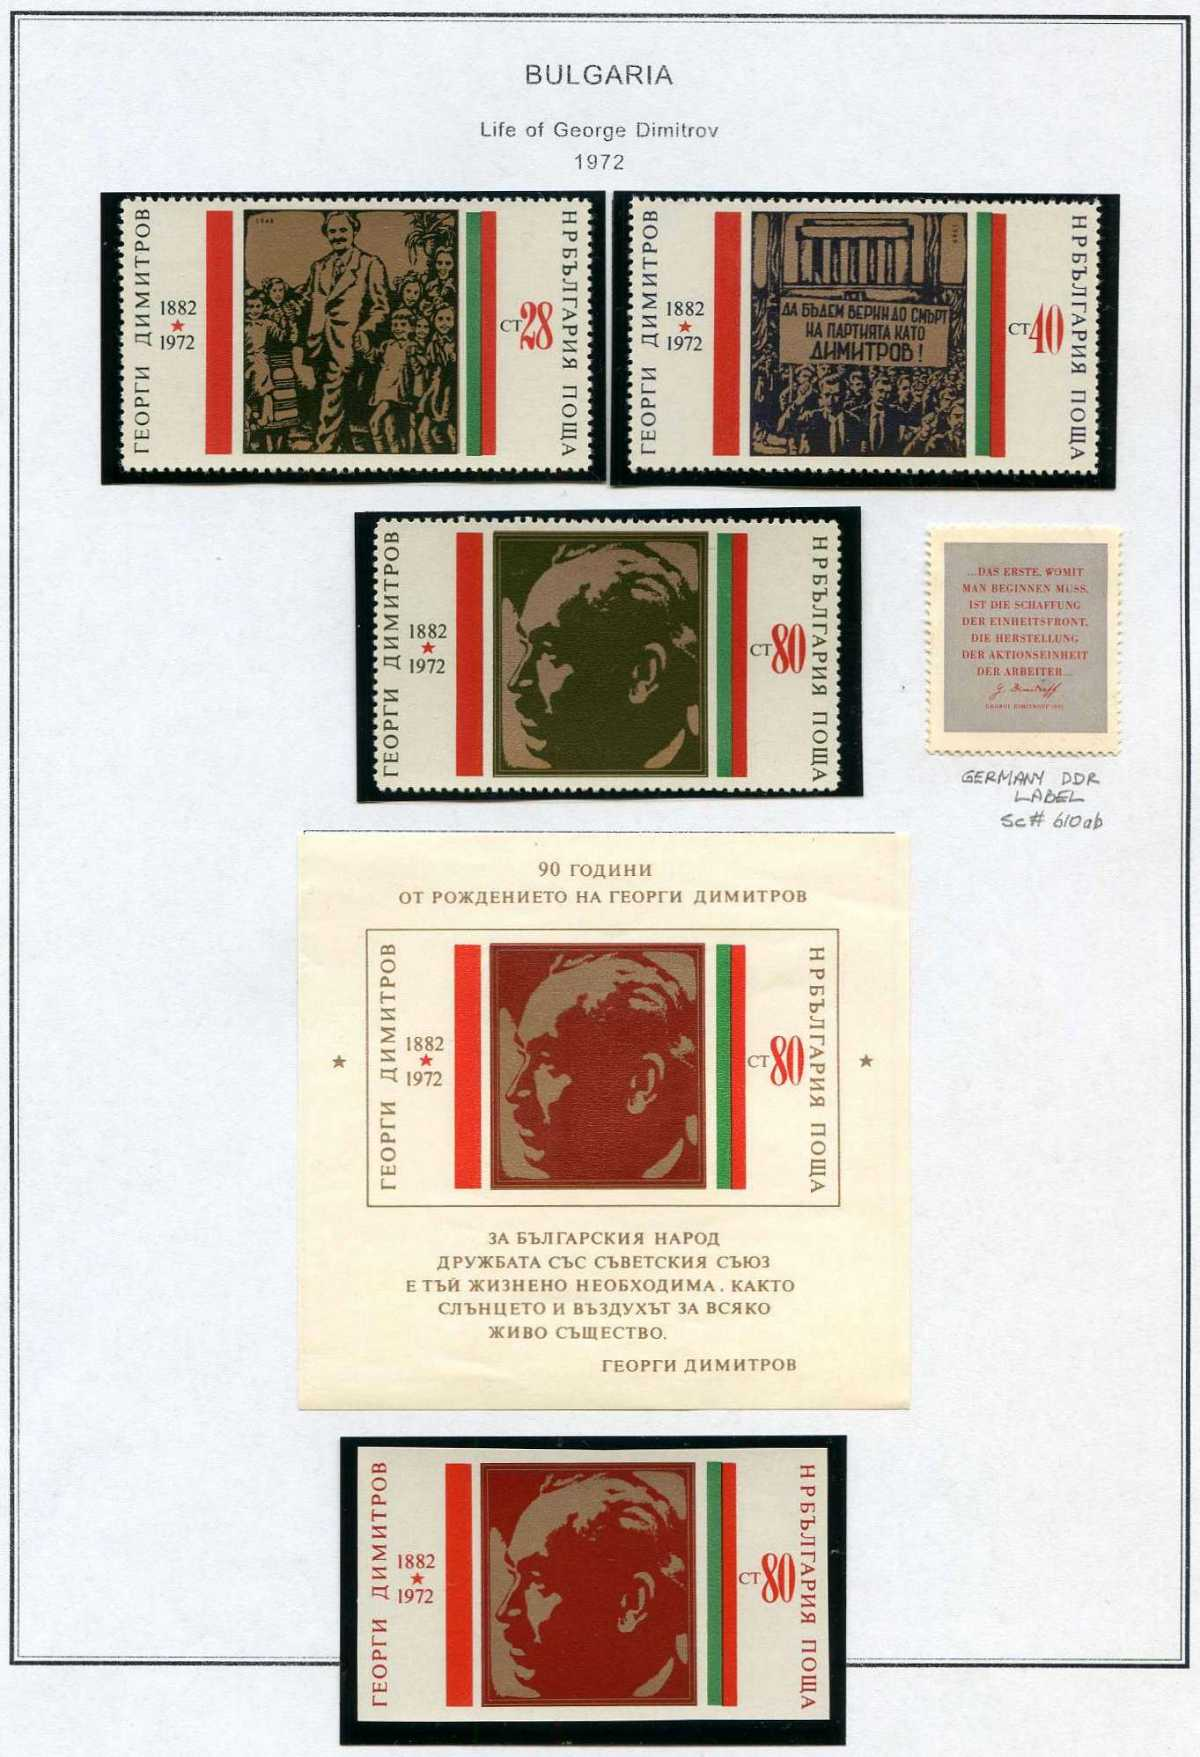 Bulgaria Stamps : On Steiner Pages  - Stamp Community Forum - Page 2